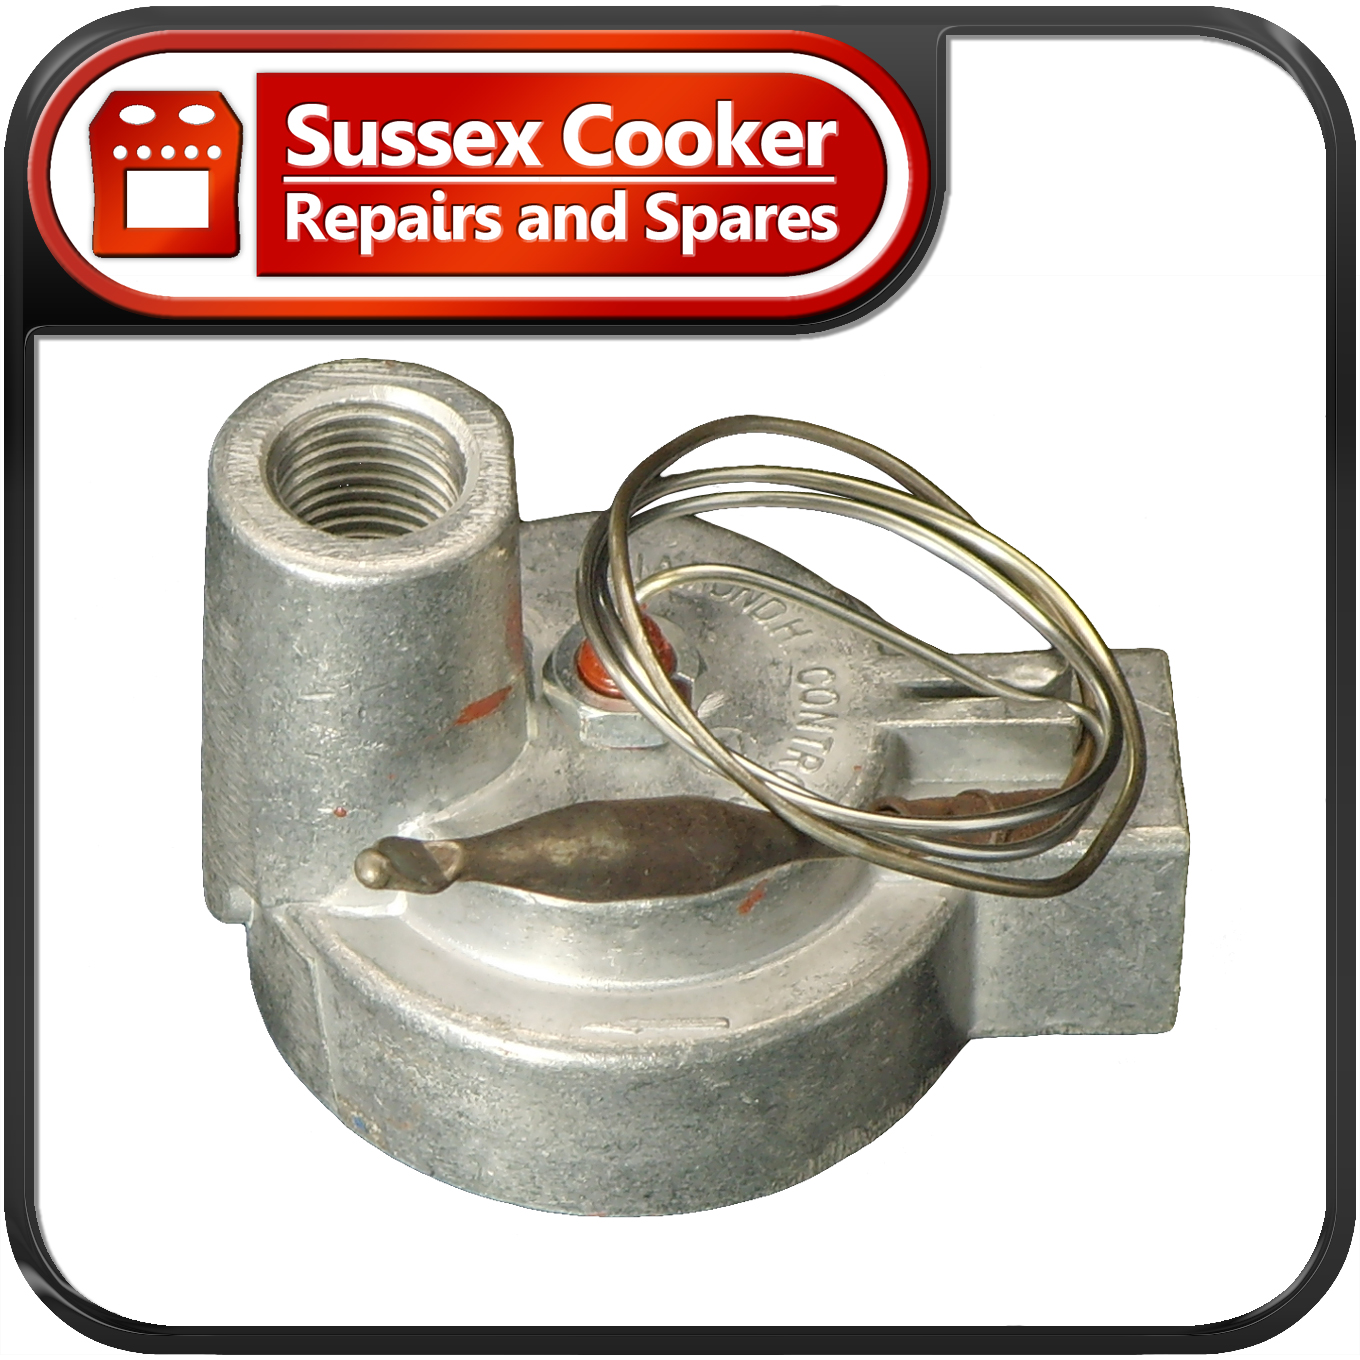 how to use a gas cooker safely